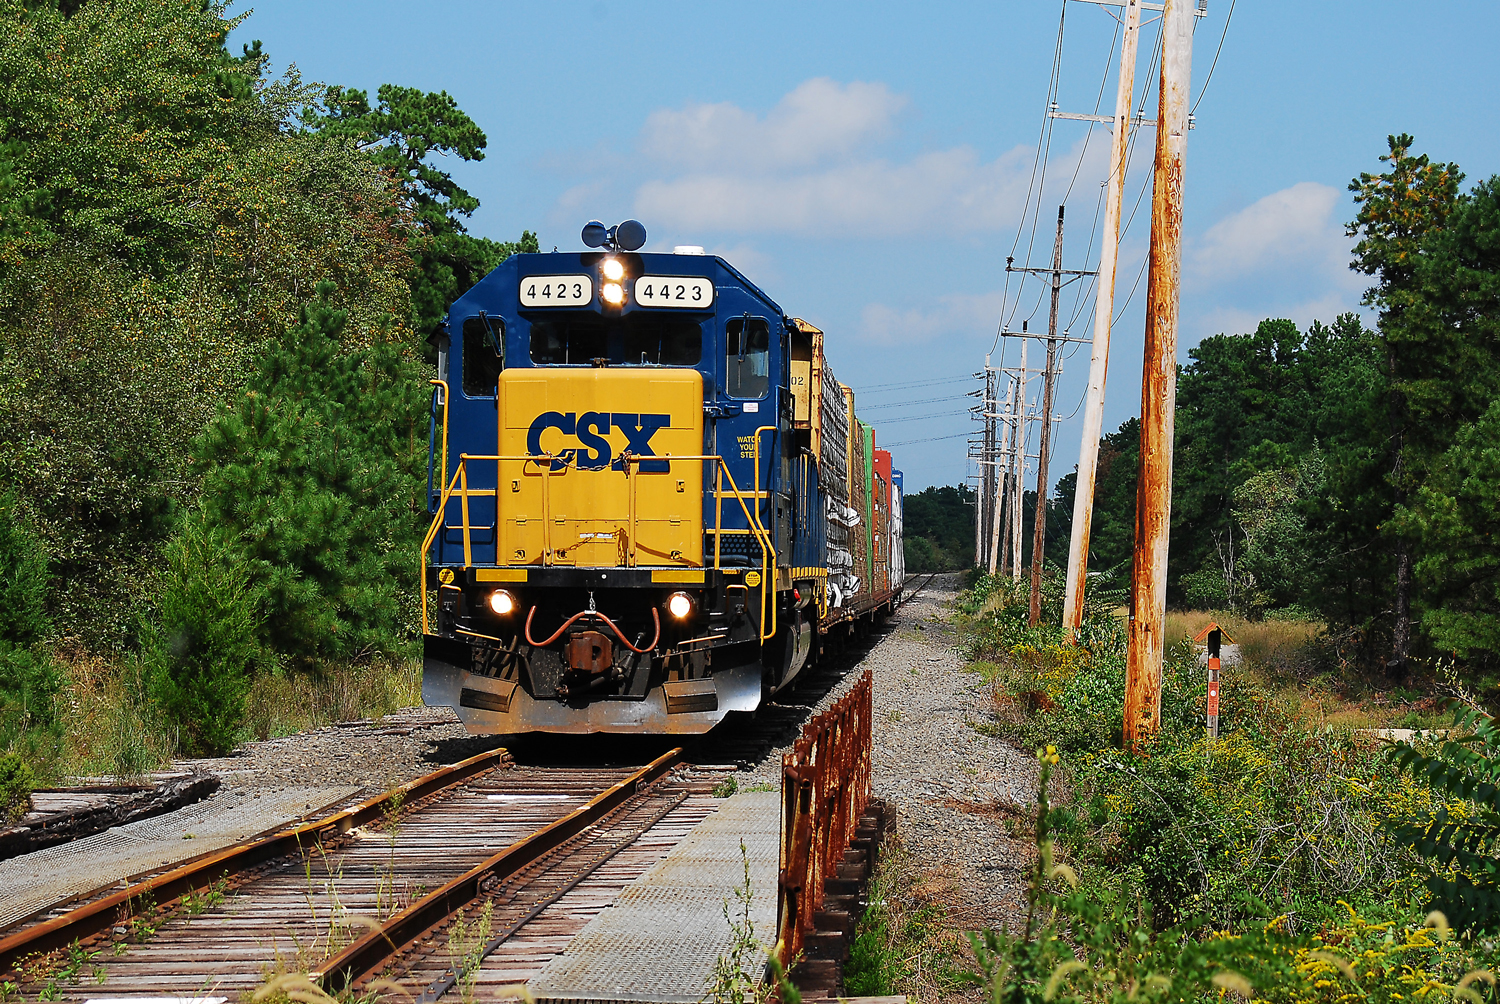 Conrail wayfreight prepares for run-around on famed 'Blue Comet' route